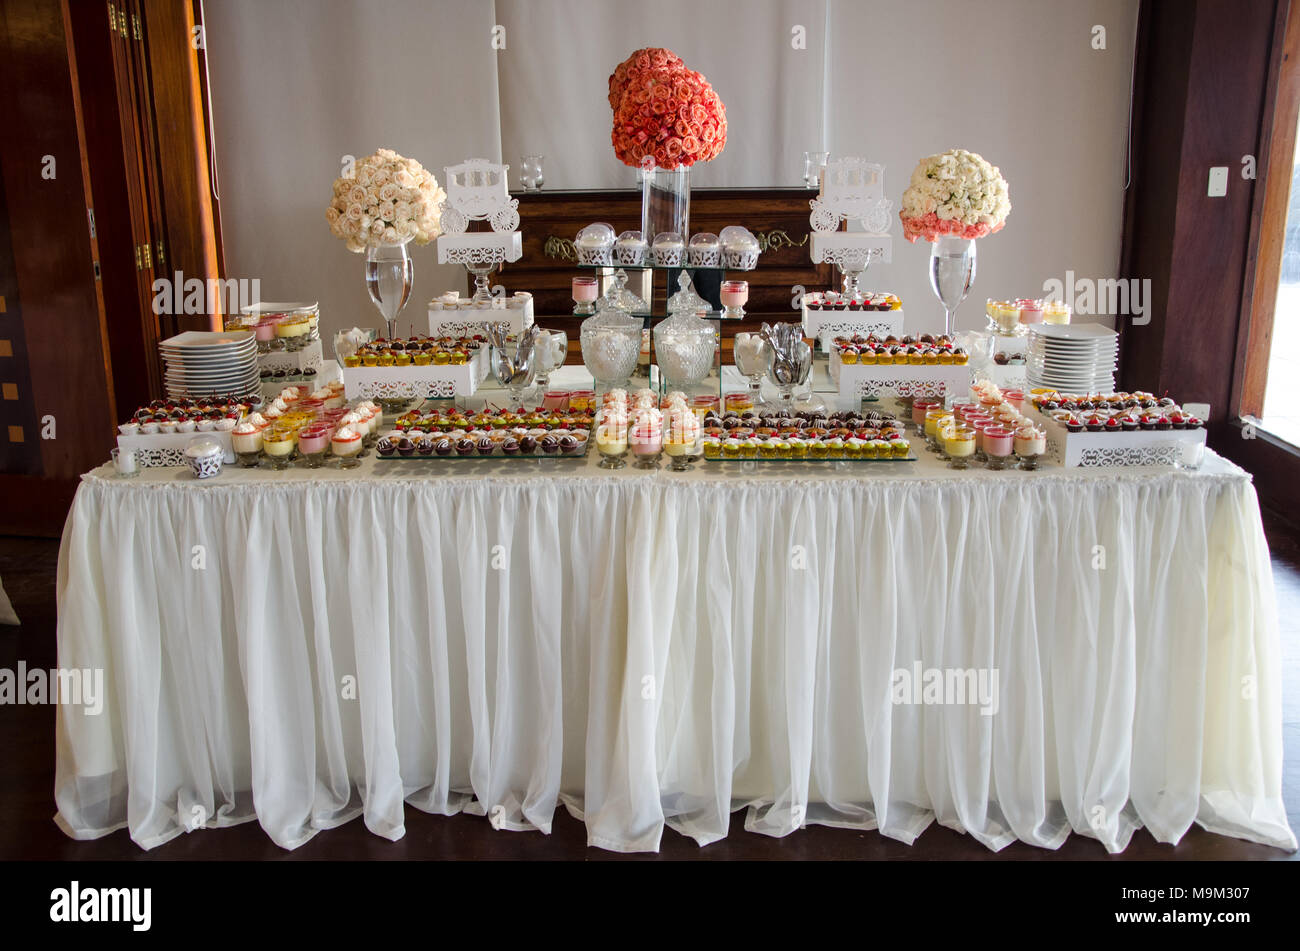 Decorating a candy table at a wedding Stock Photo - Alamy